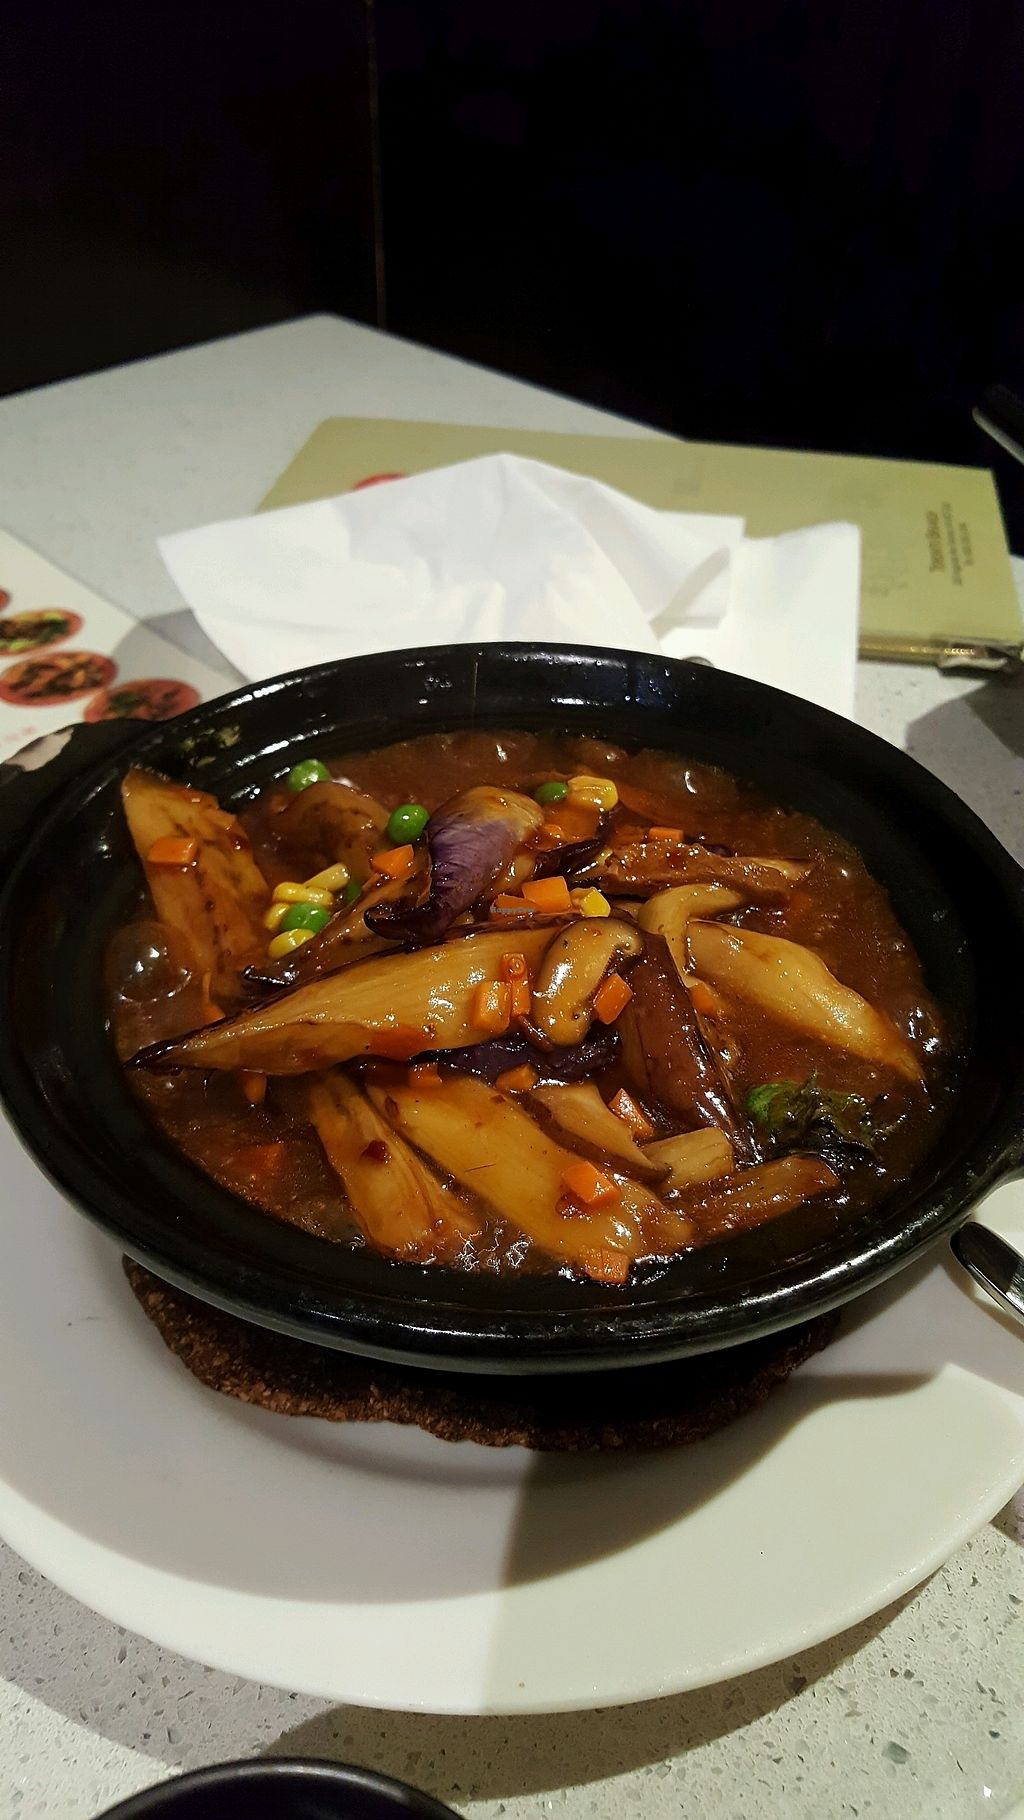 """Photo of King's Cafe  by <a href=""""/members/profile/Brit87"""">Brit87</a> <br/>spicy eggplant <br/> February 18, 2018  - <a href='/contact/abuse/image/17836/360661'>Report</a>"""